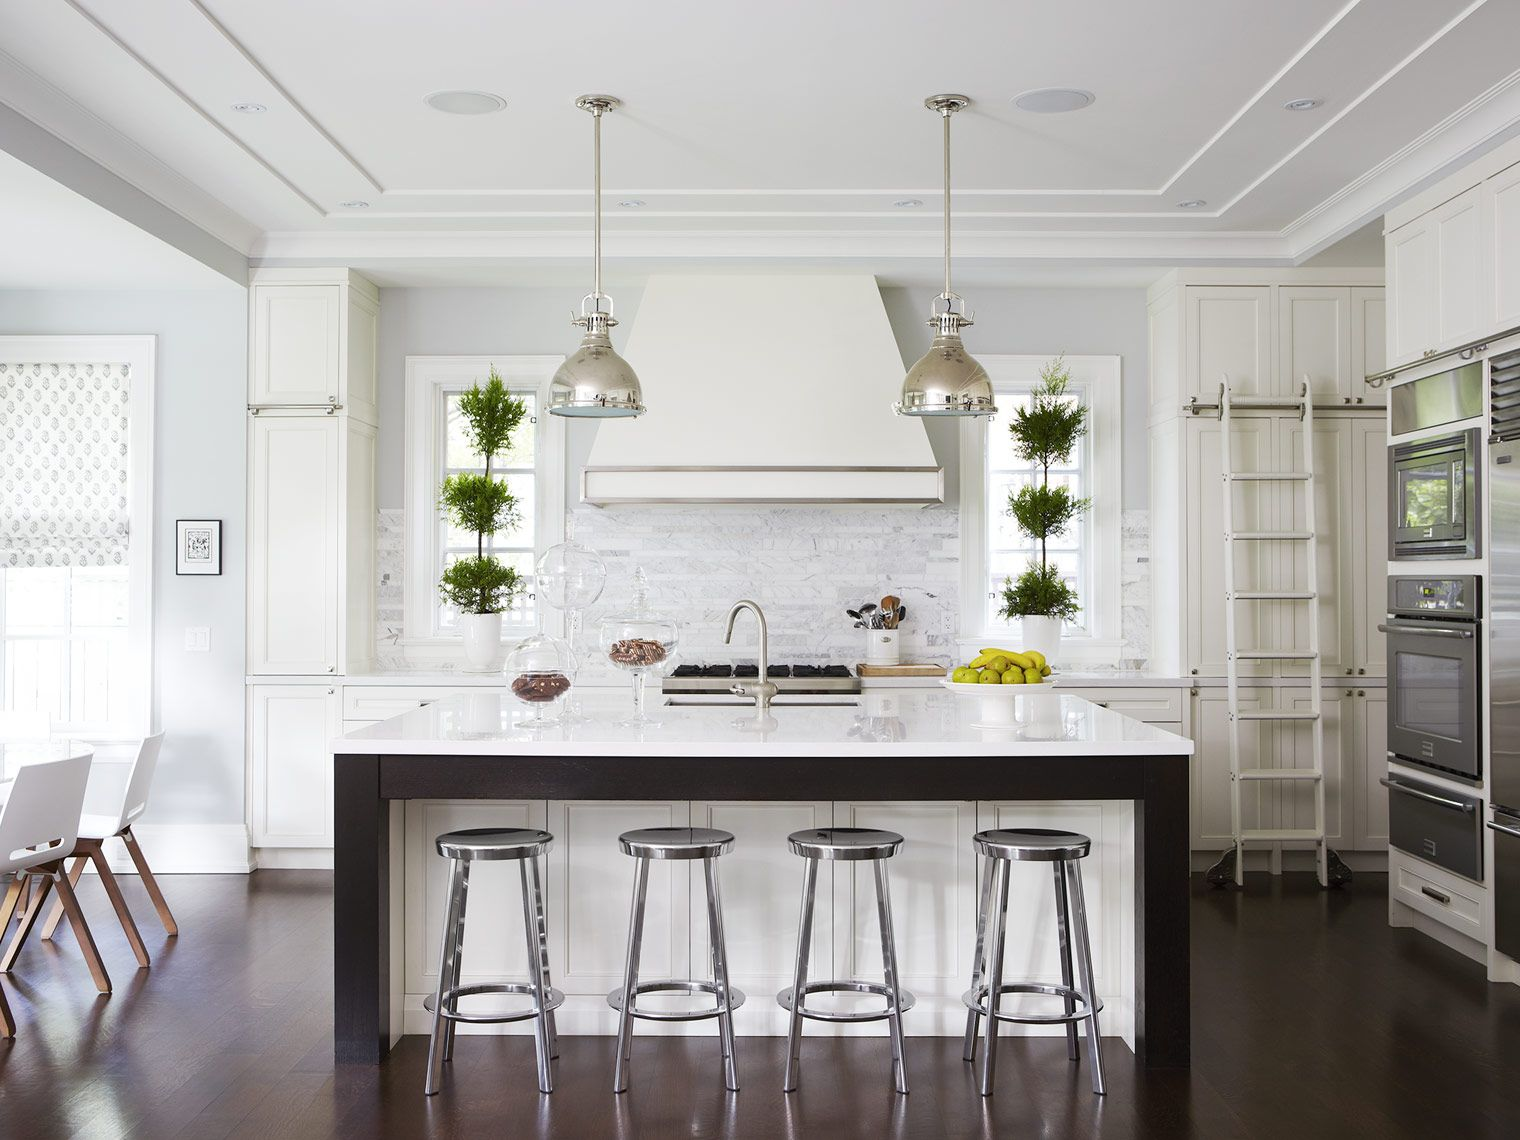 House And Home Kitchen Designs Brooke Ave Kitchen Design By Feasby Bleeks Design Photography